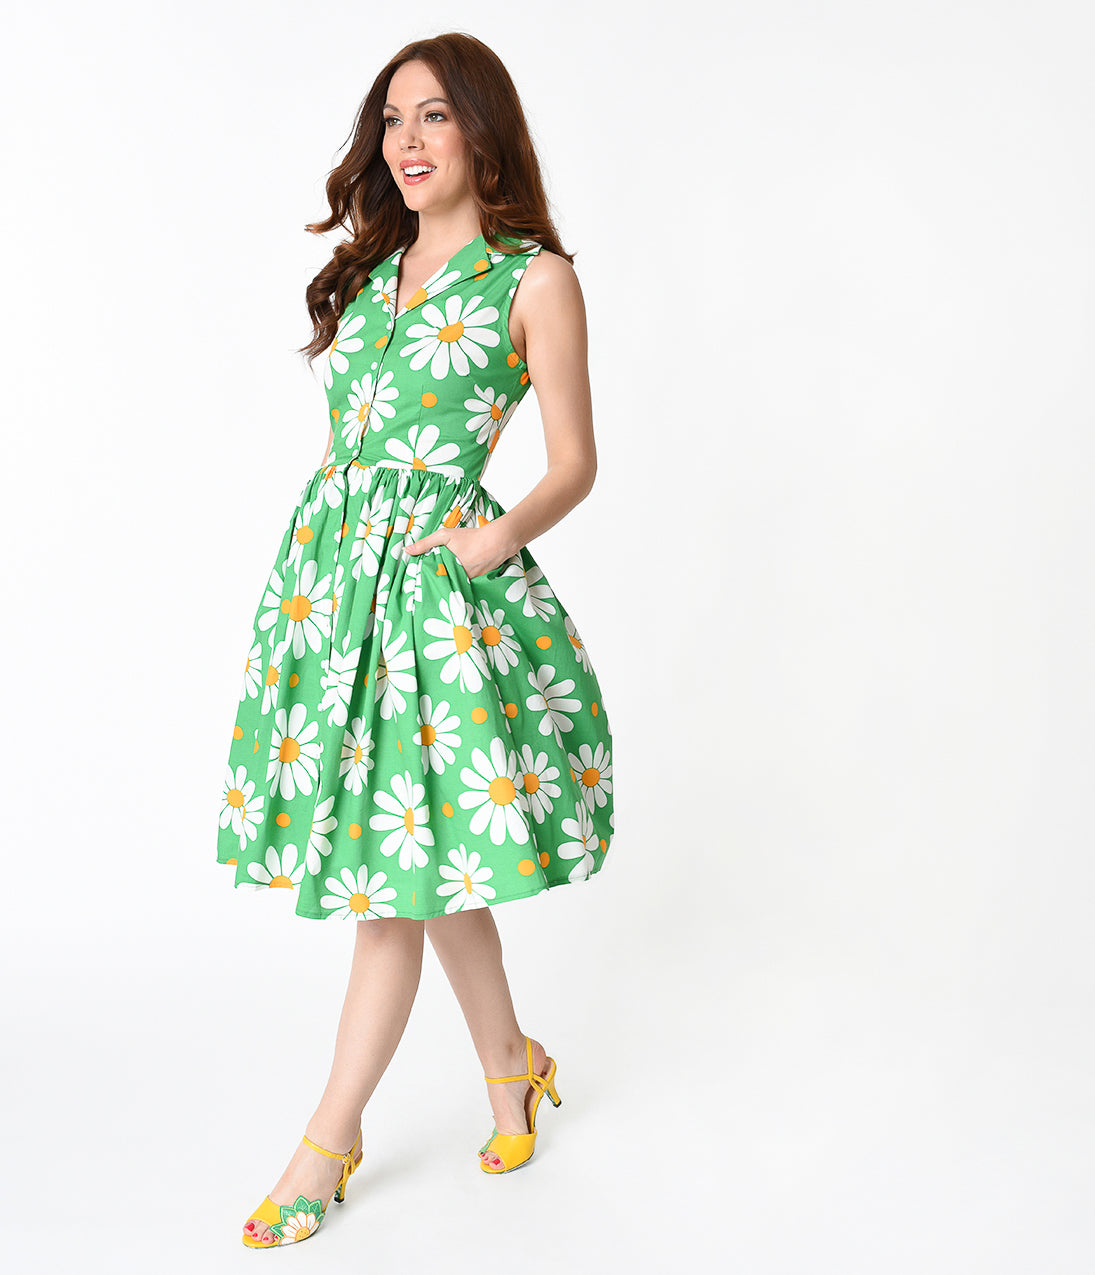 500 Vintage Style Dresses for Sale Banned Green  White Daisy Print Button Up Cotton Swing Dress $78.00 AT vintagedancer.com